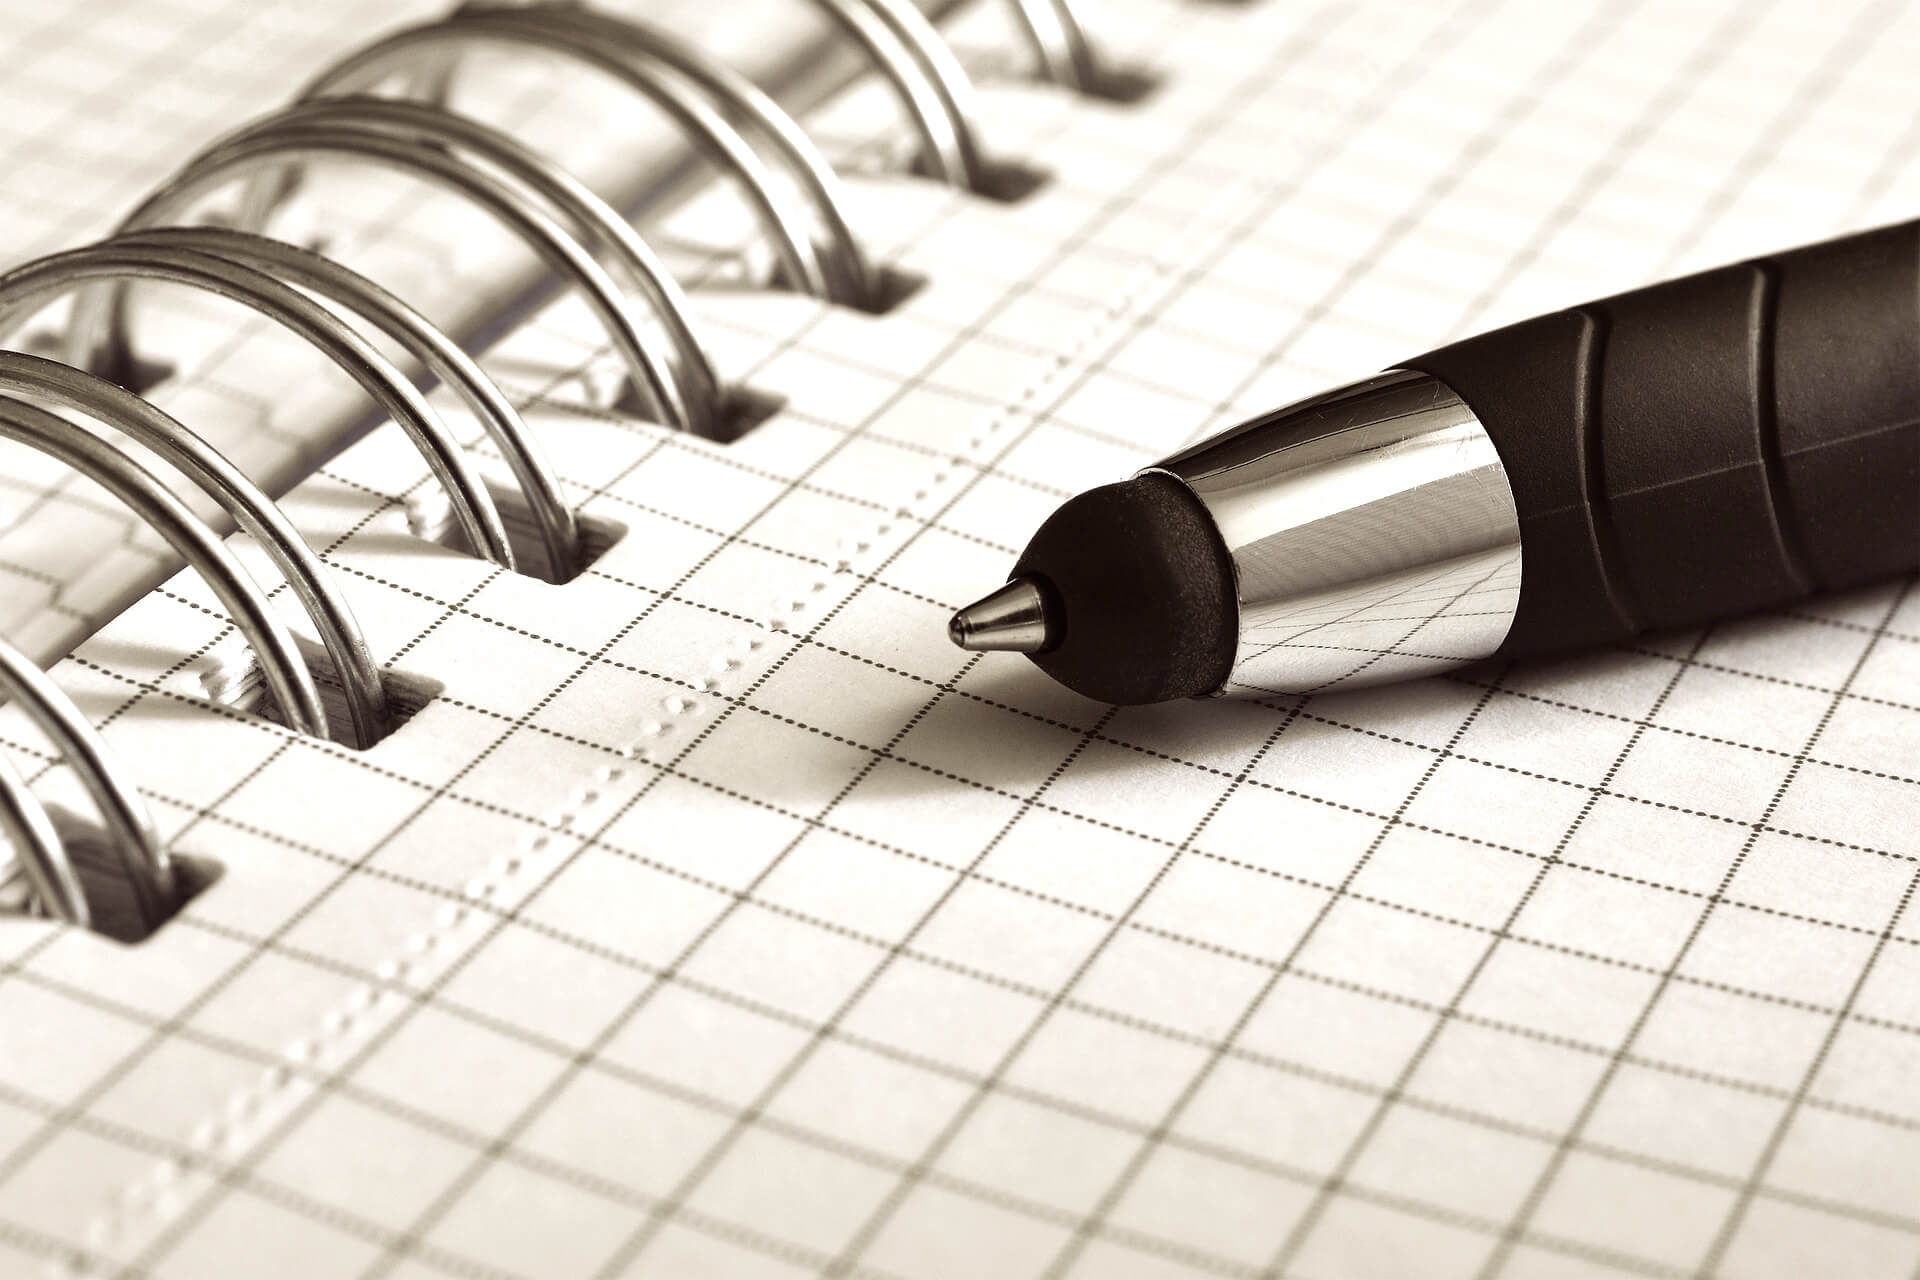 This image displays a pen and a notebook and portrays relevance to branding and strategy for non-profit fundraising campaigns